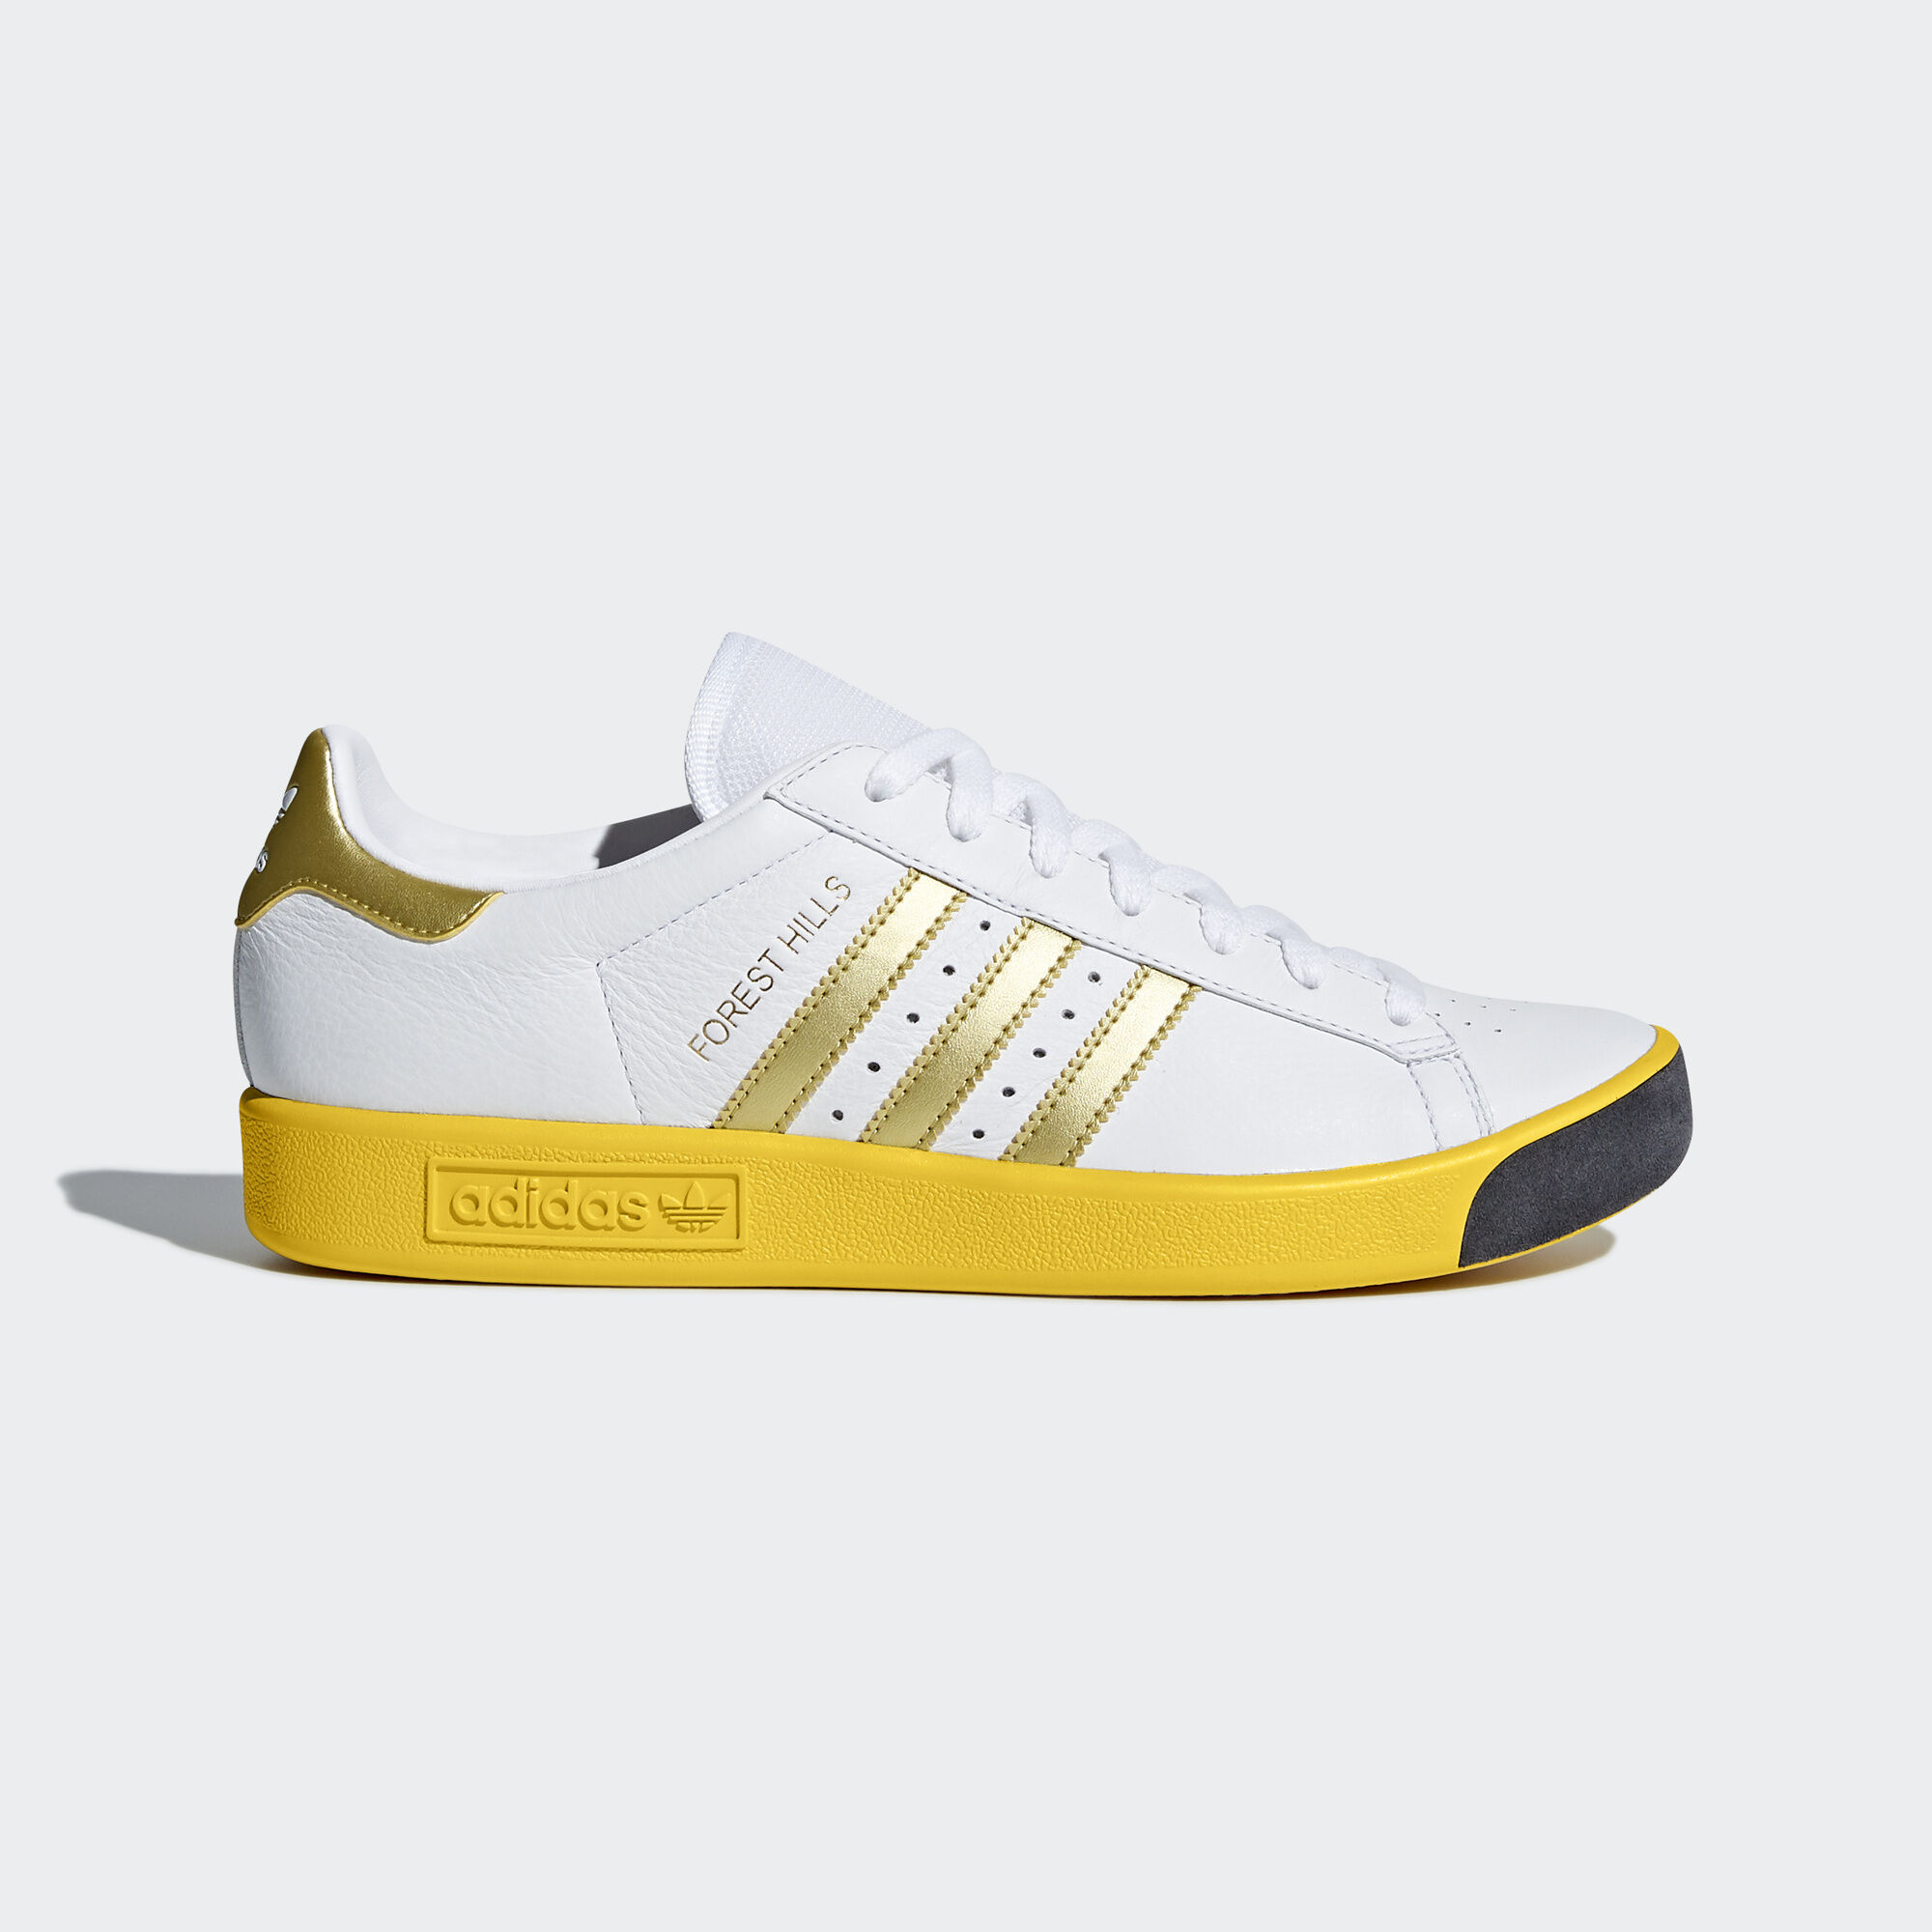 sports shoes ec0ab bfb16 ... reduced adidas forest hills shoes ftwr white gold metallic eqt yellow  cq2083. originals 2fd63 83f3d